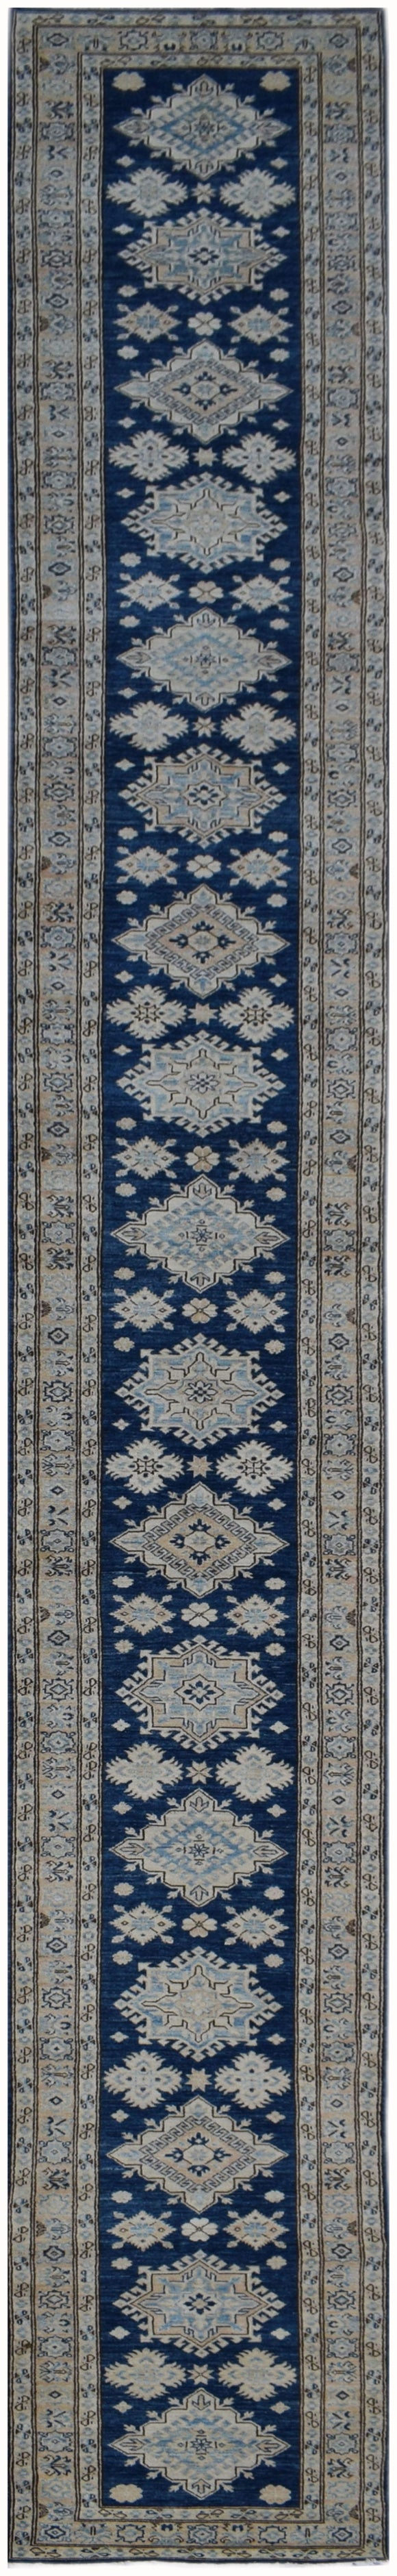 Handmade Super Sultan Collection Hallway Runner | 685 x 77 cm | 22'4